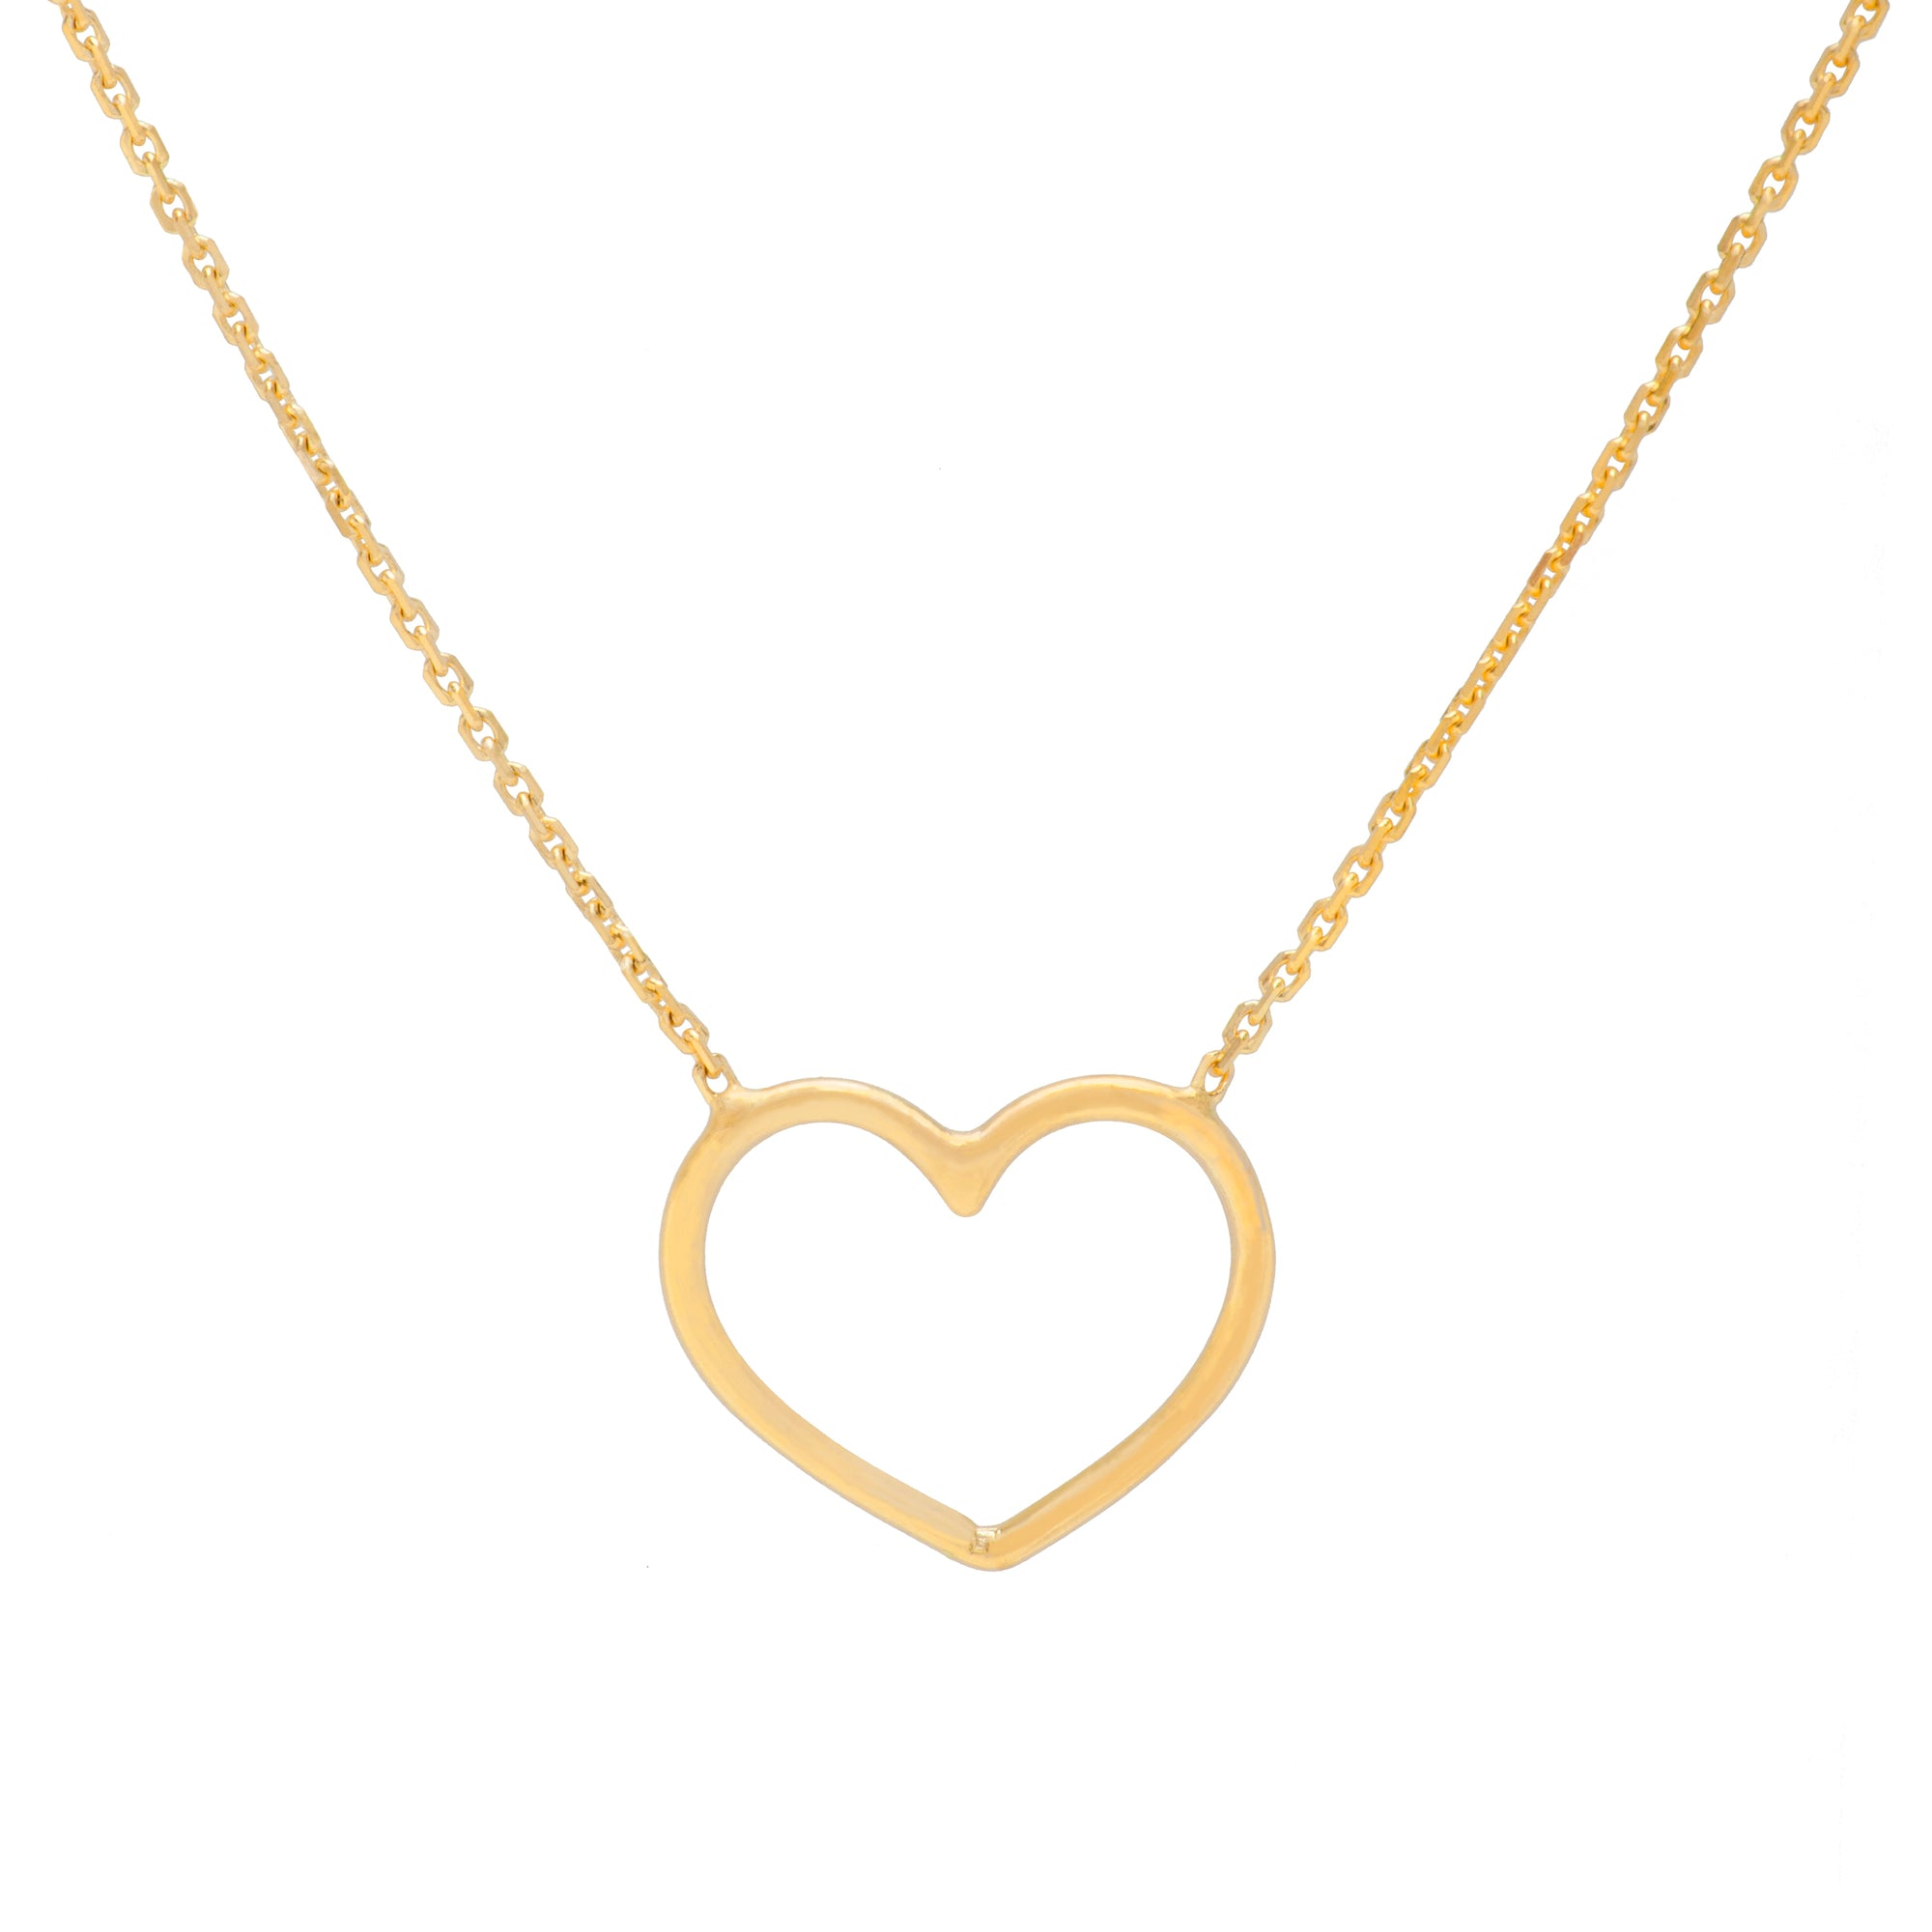 14K Yellow Gold Open Heart Adjustable Necklace (more colors)